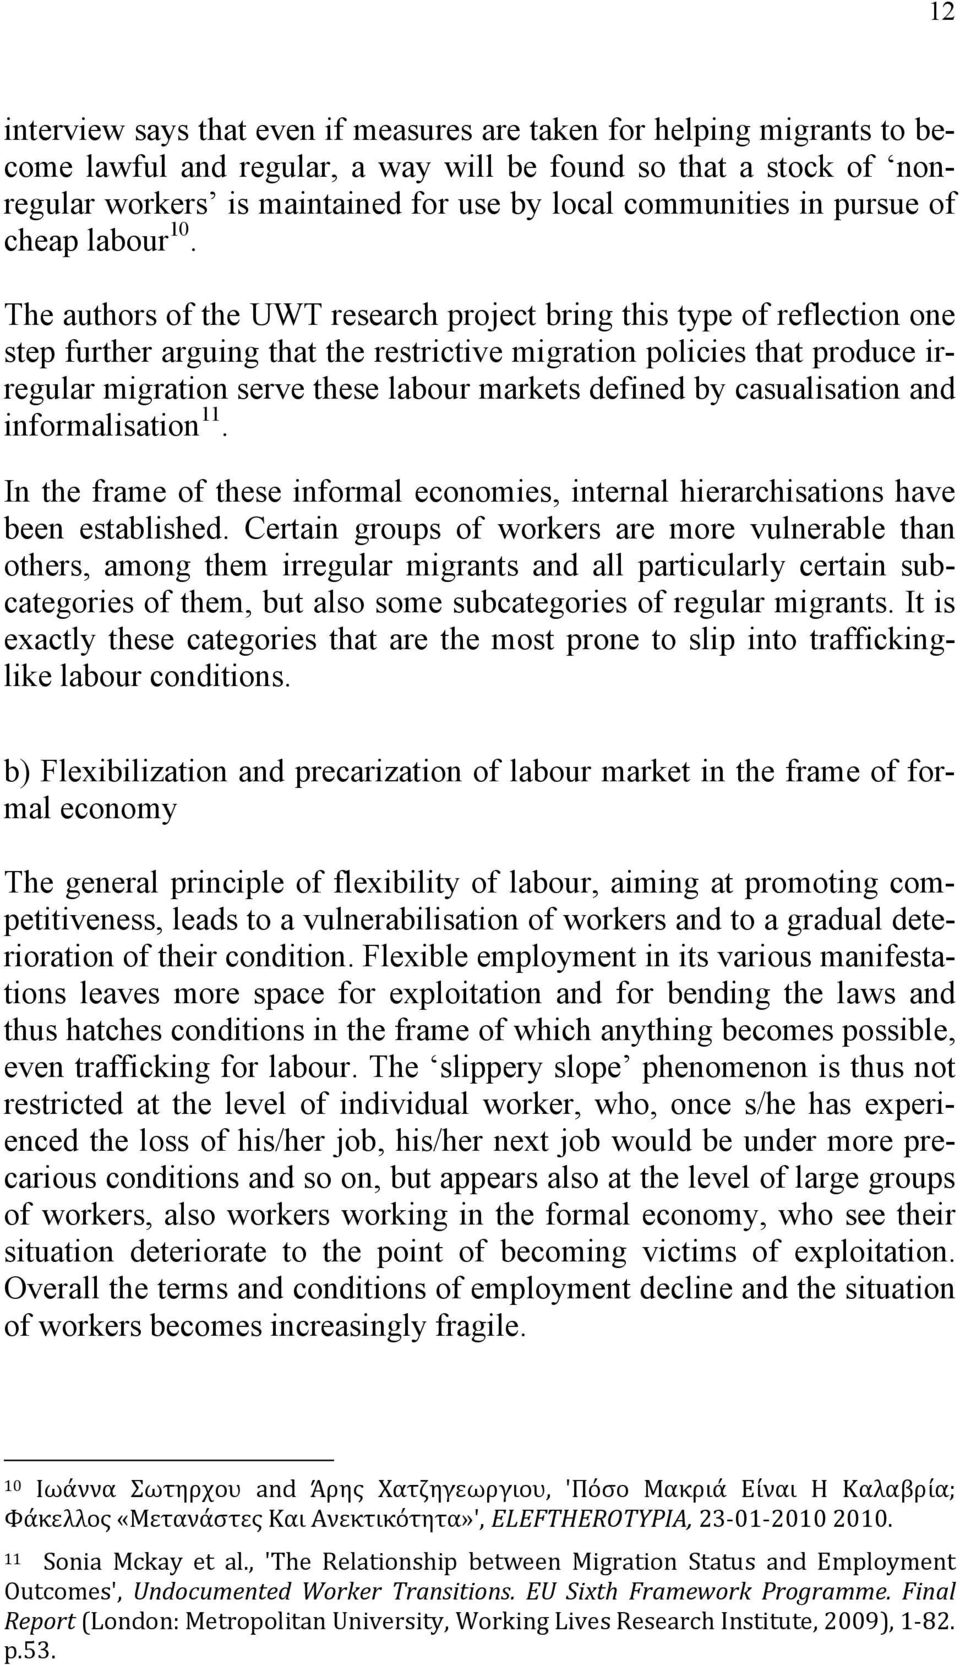 The authors of the UWT research project bring this type of reflection one step further arguing that the restrictive migration policies that produce irregular migration serve these labour markets